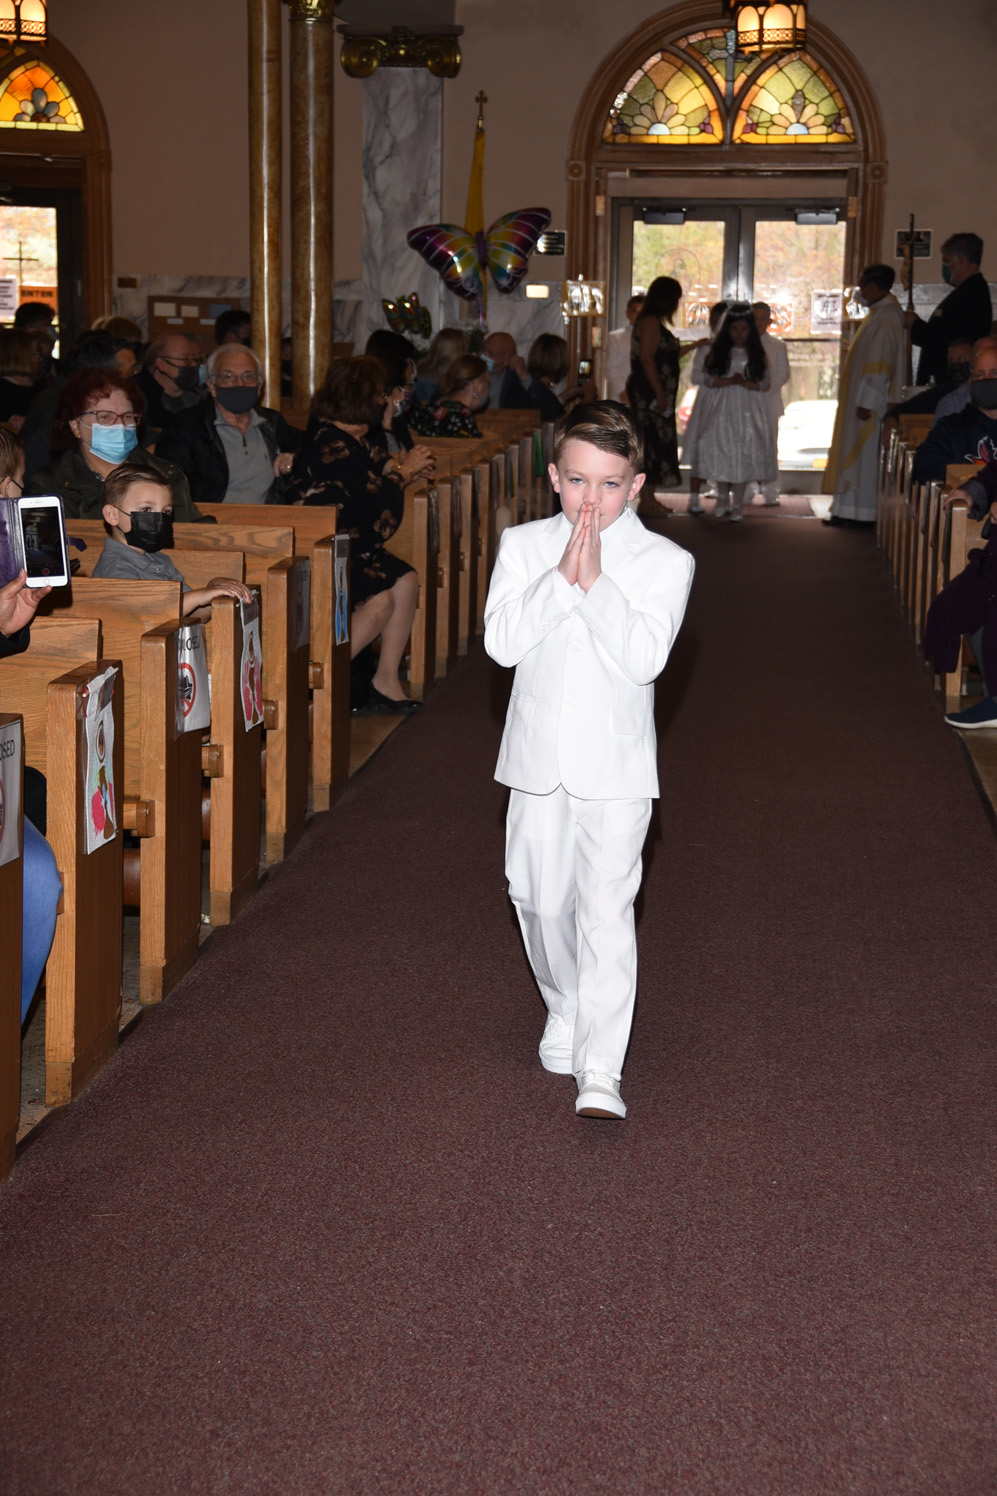 FIRST-COMMUNION-MAY-2-2021-1001001026